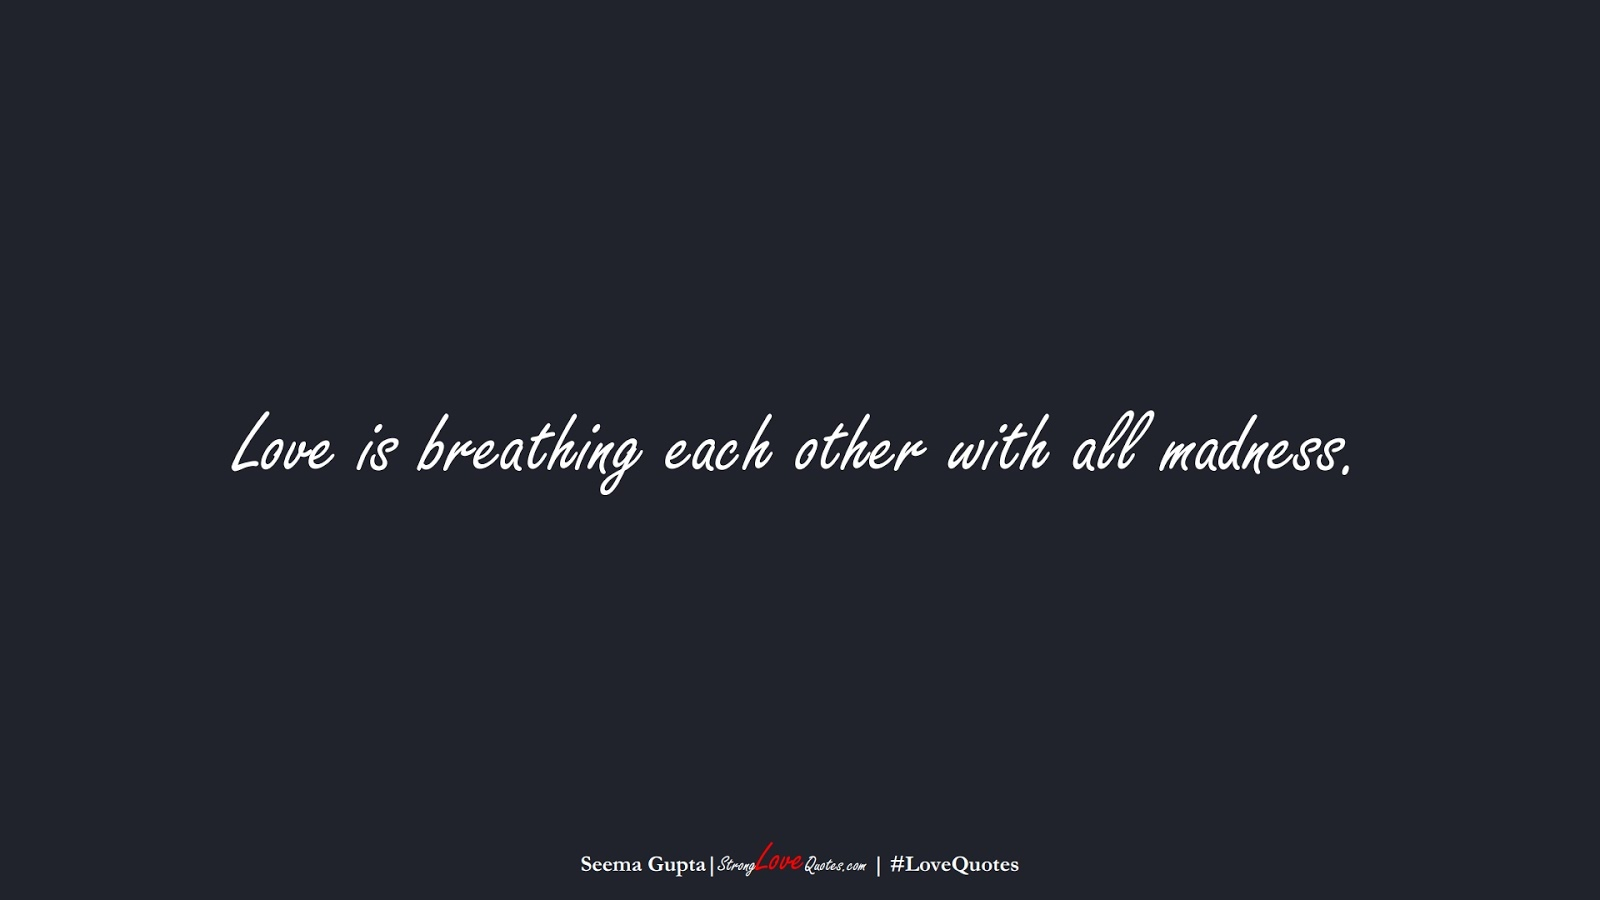 Love is breathing each other with all madness. (Seema Gupta);  #LoveQuotes